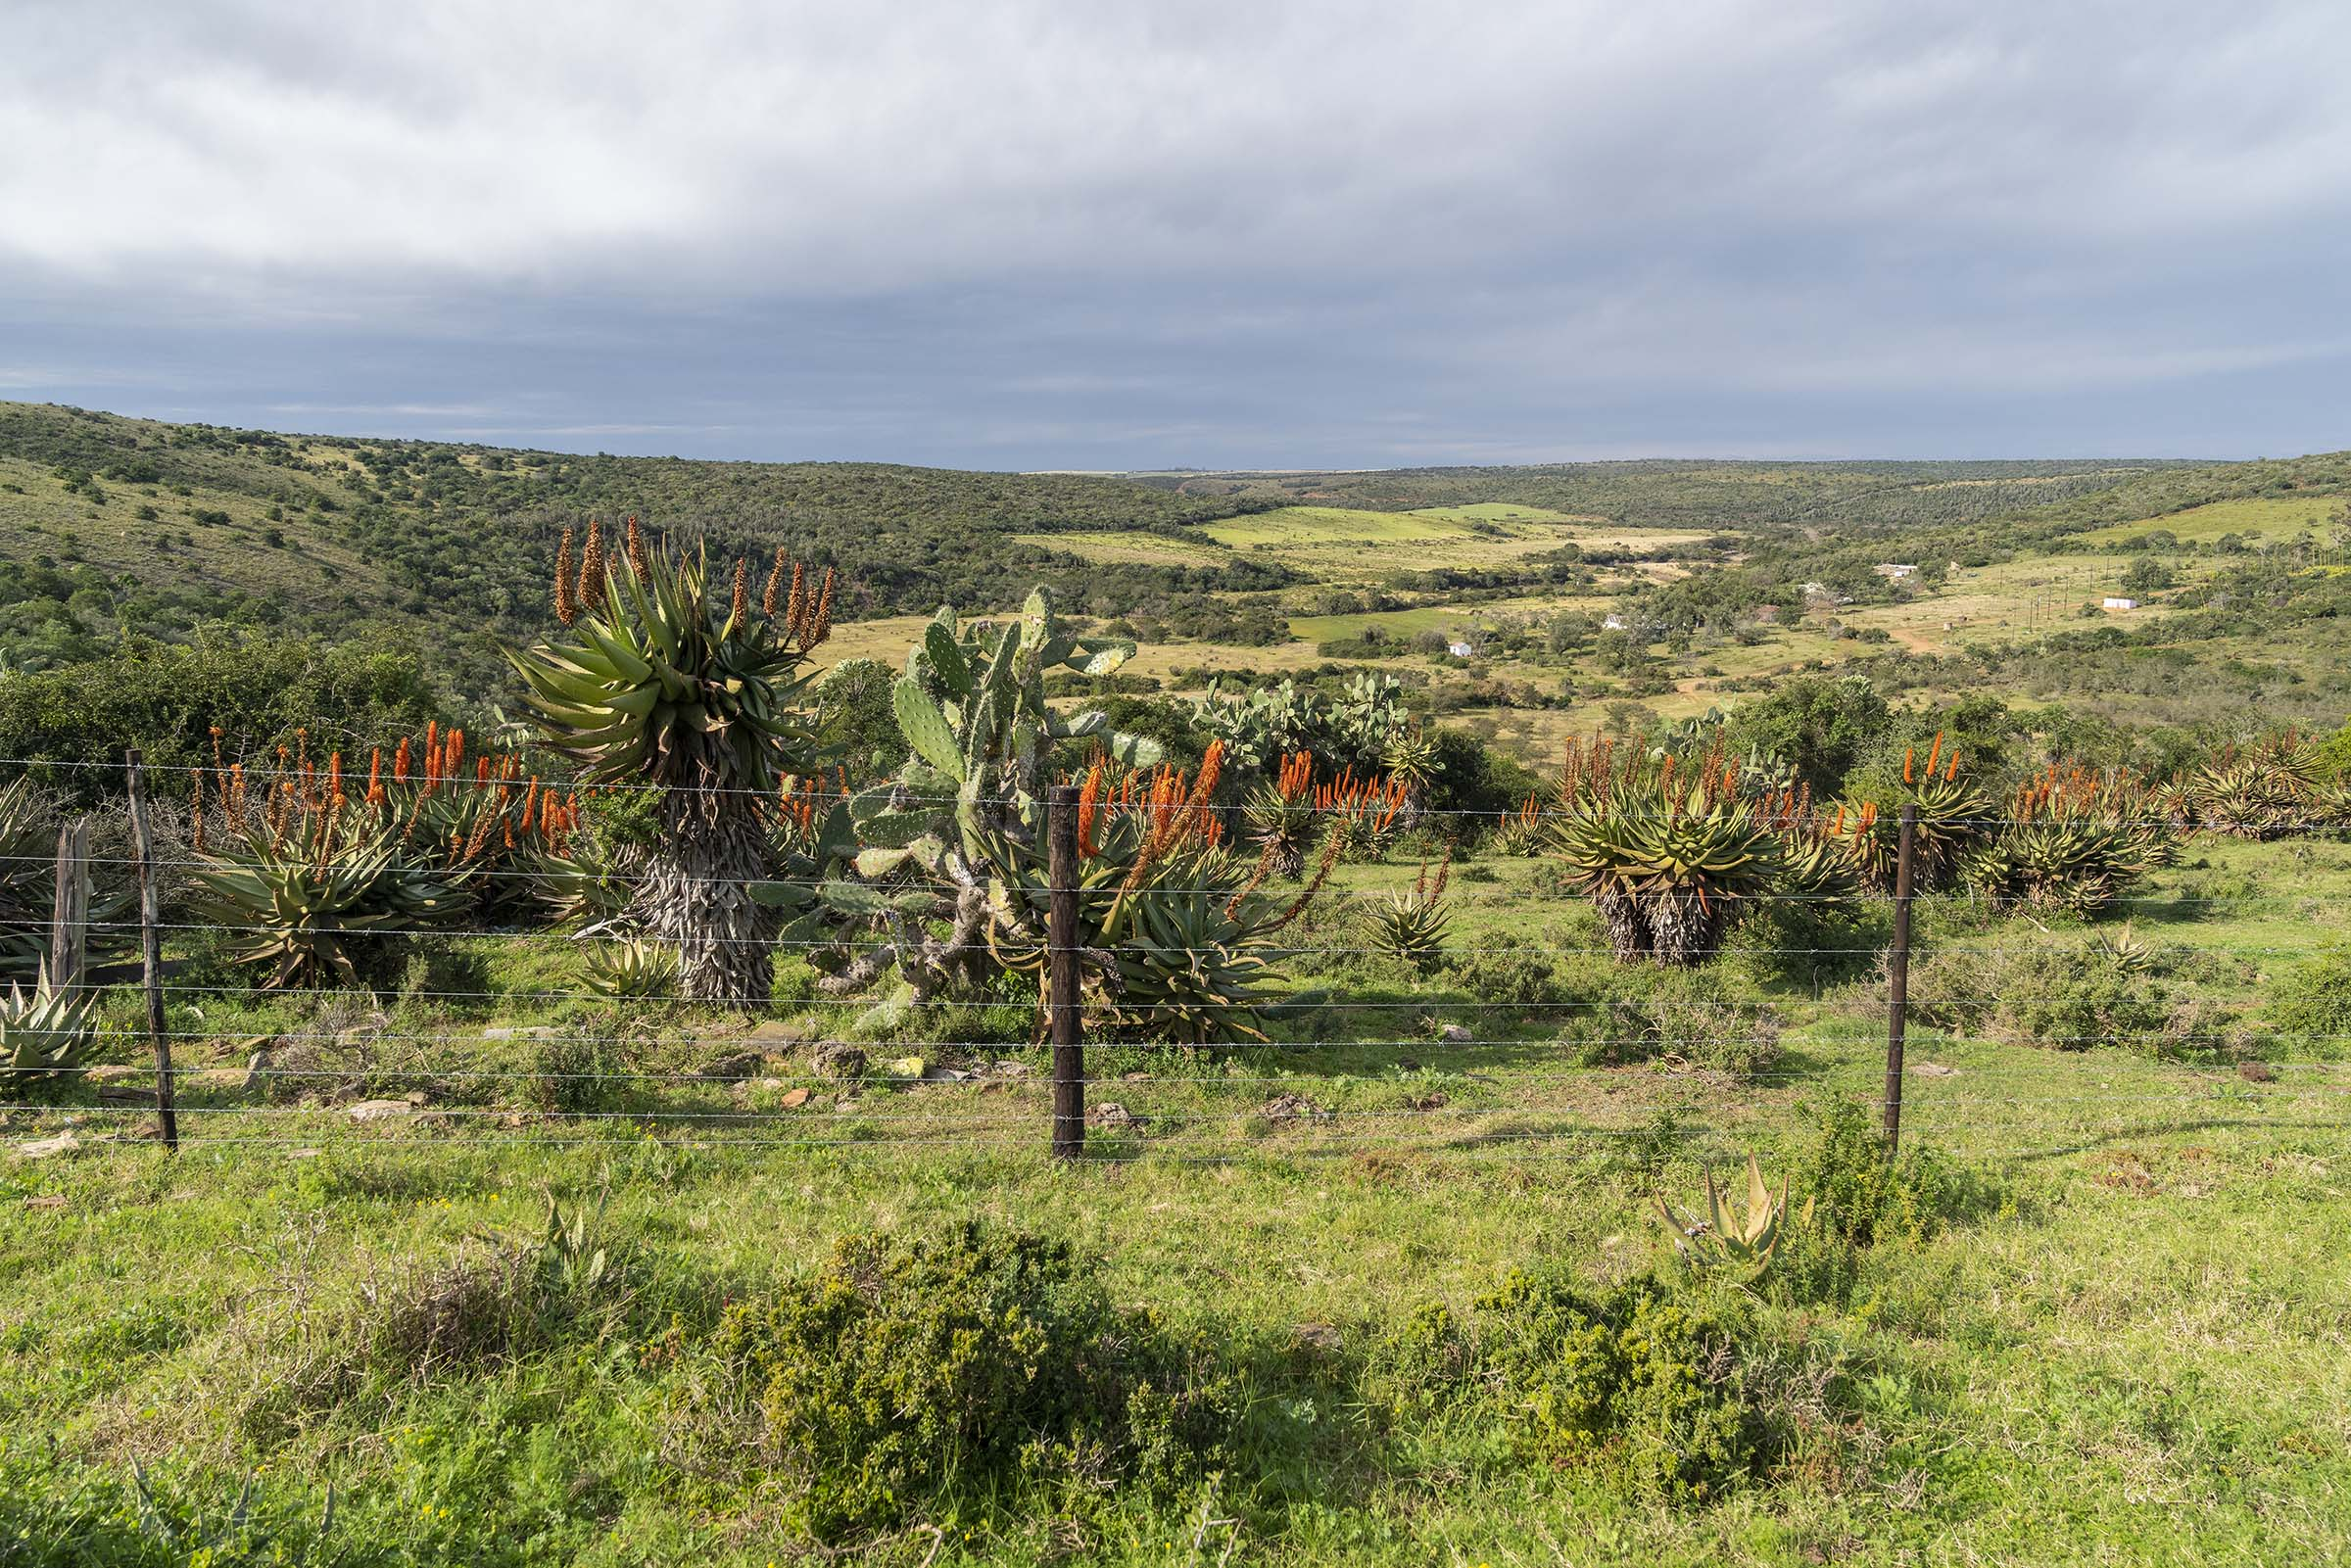 1 July 2019: Brush, aloes and thorn trees dot the land around Salem, 20km southeast of Makhanda.